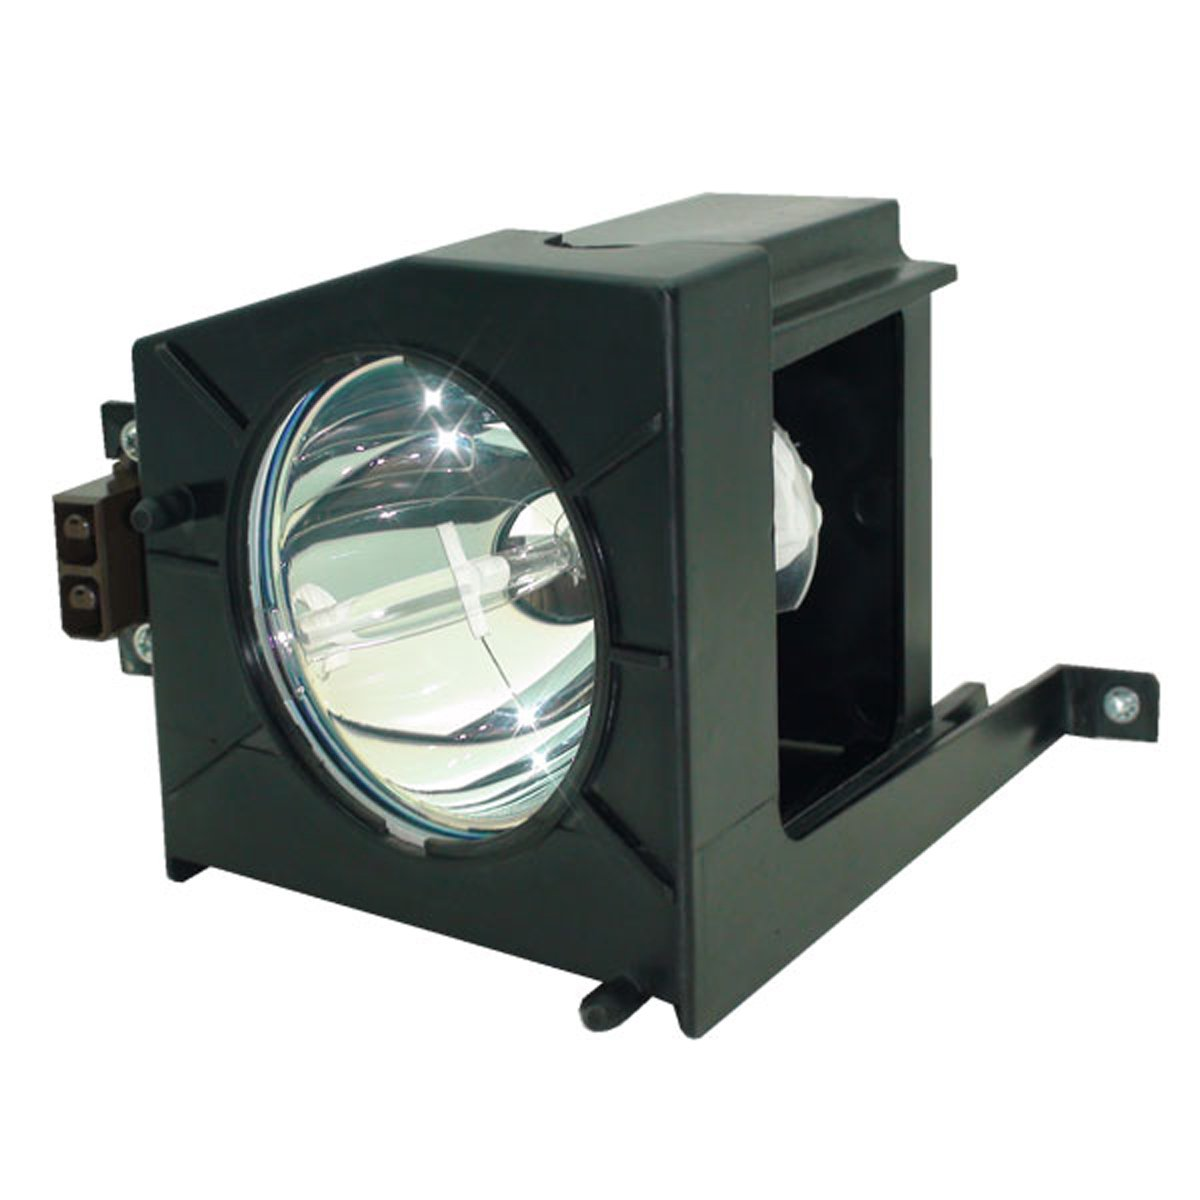 SpArc テレビ交換用ランプ 囲い/電球付き 東芝46HM15用 Platinum (Brighter/Durable) B07MPT83PL Lamp with Housing Platinum (Brighter/Durable)